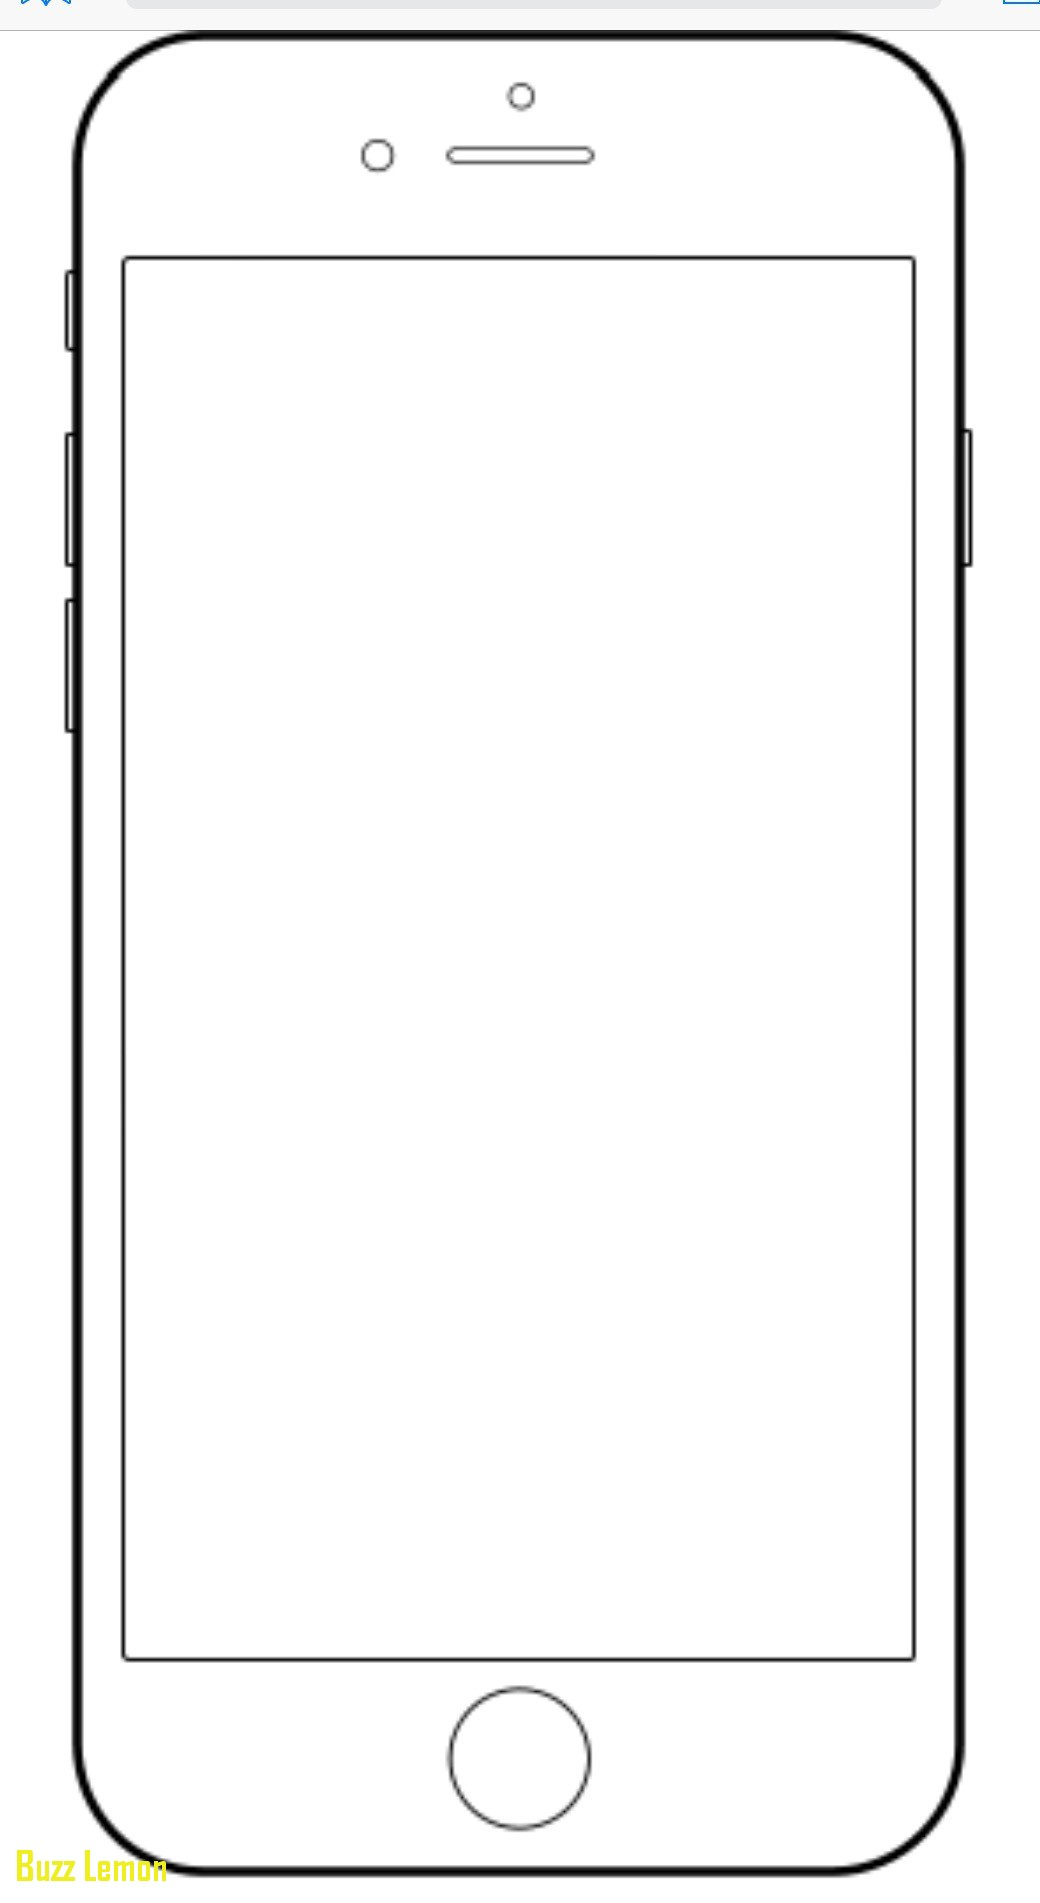 iPhone Coloring Pages Printable 12b - Free For kids